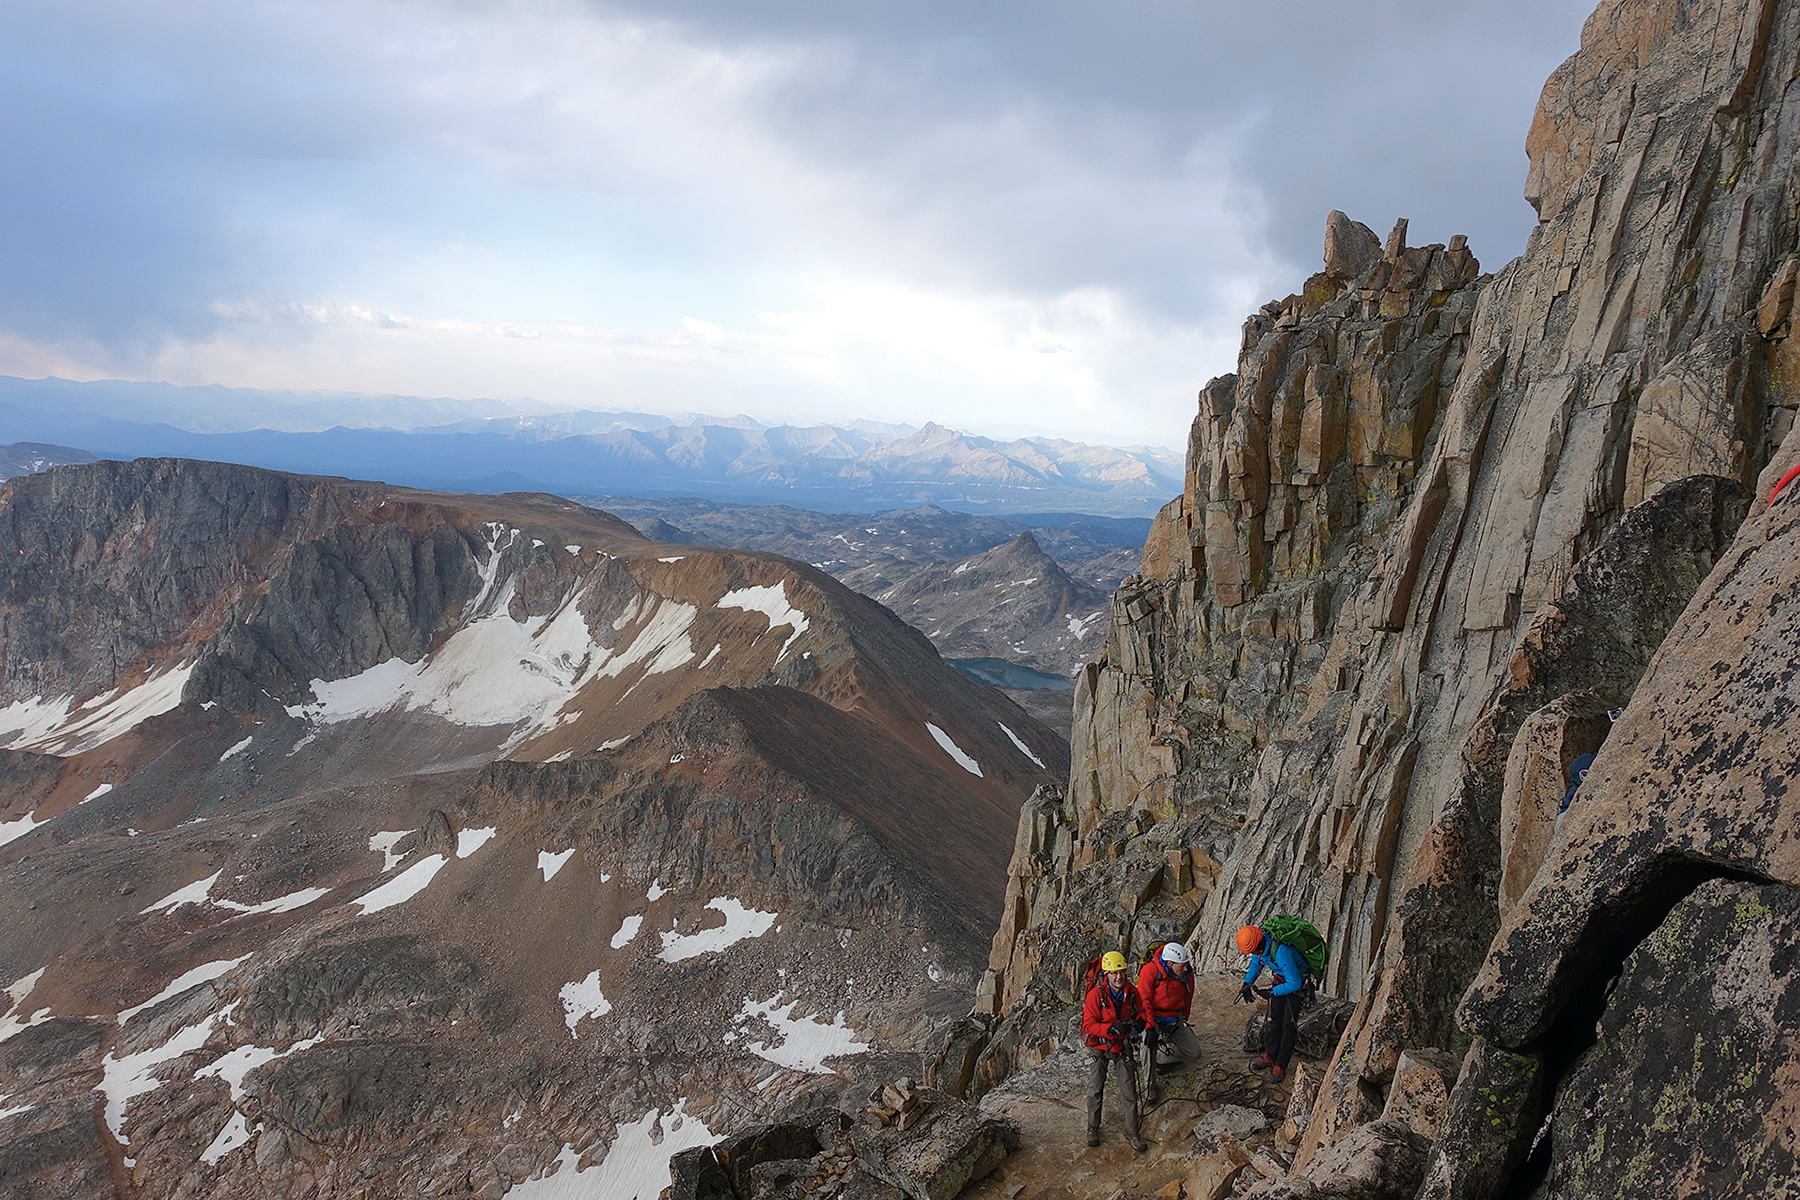 Roger Pierson summited Montana's Granite Peak in 2016. Photograph Courtesy of Roger B. Pierson Jr.